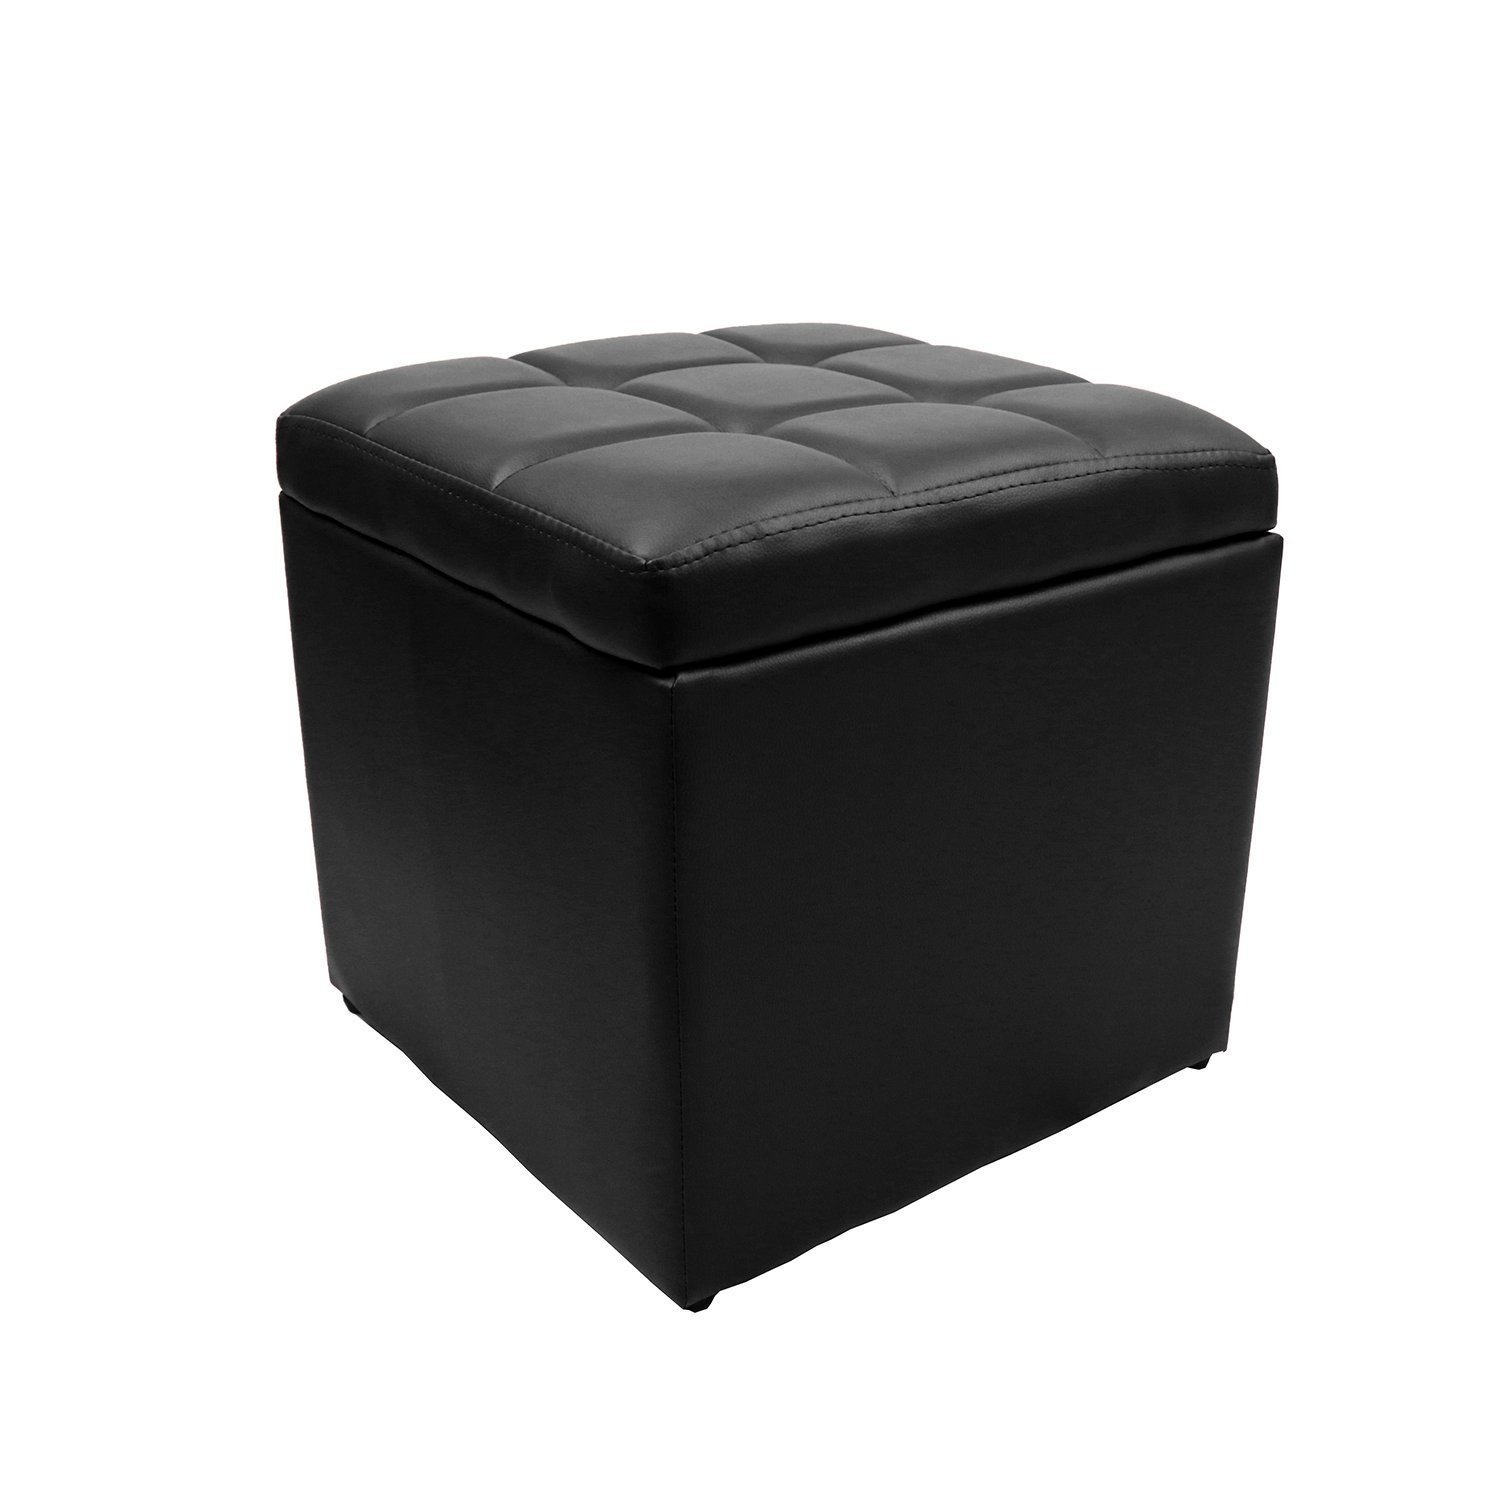 Delicieux Product Image 16u0027u0027 Square Unfold Leather Hinged Storage Ottoman Bench  Footstool Cocktail Seat Black